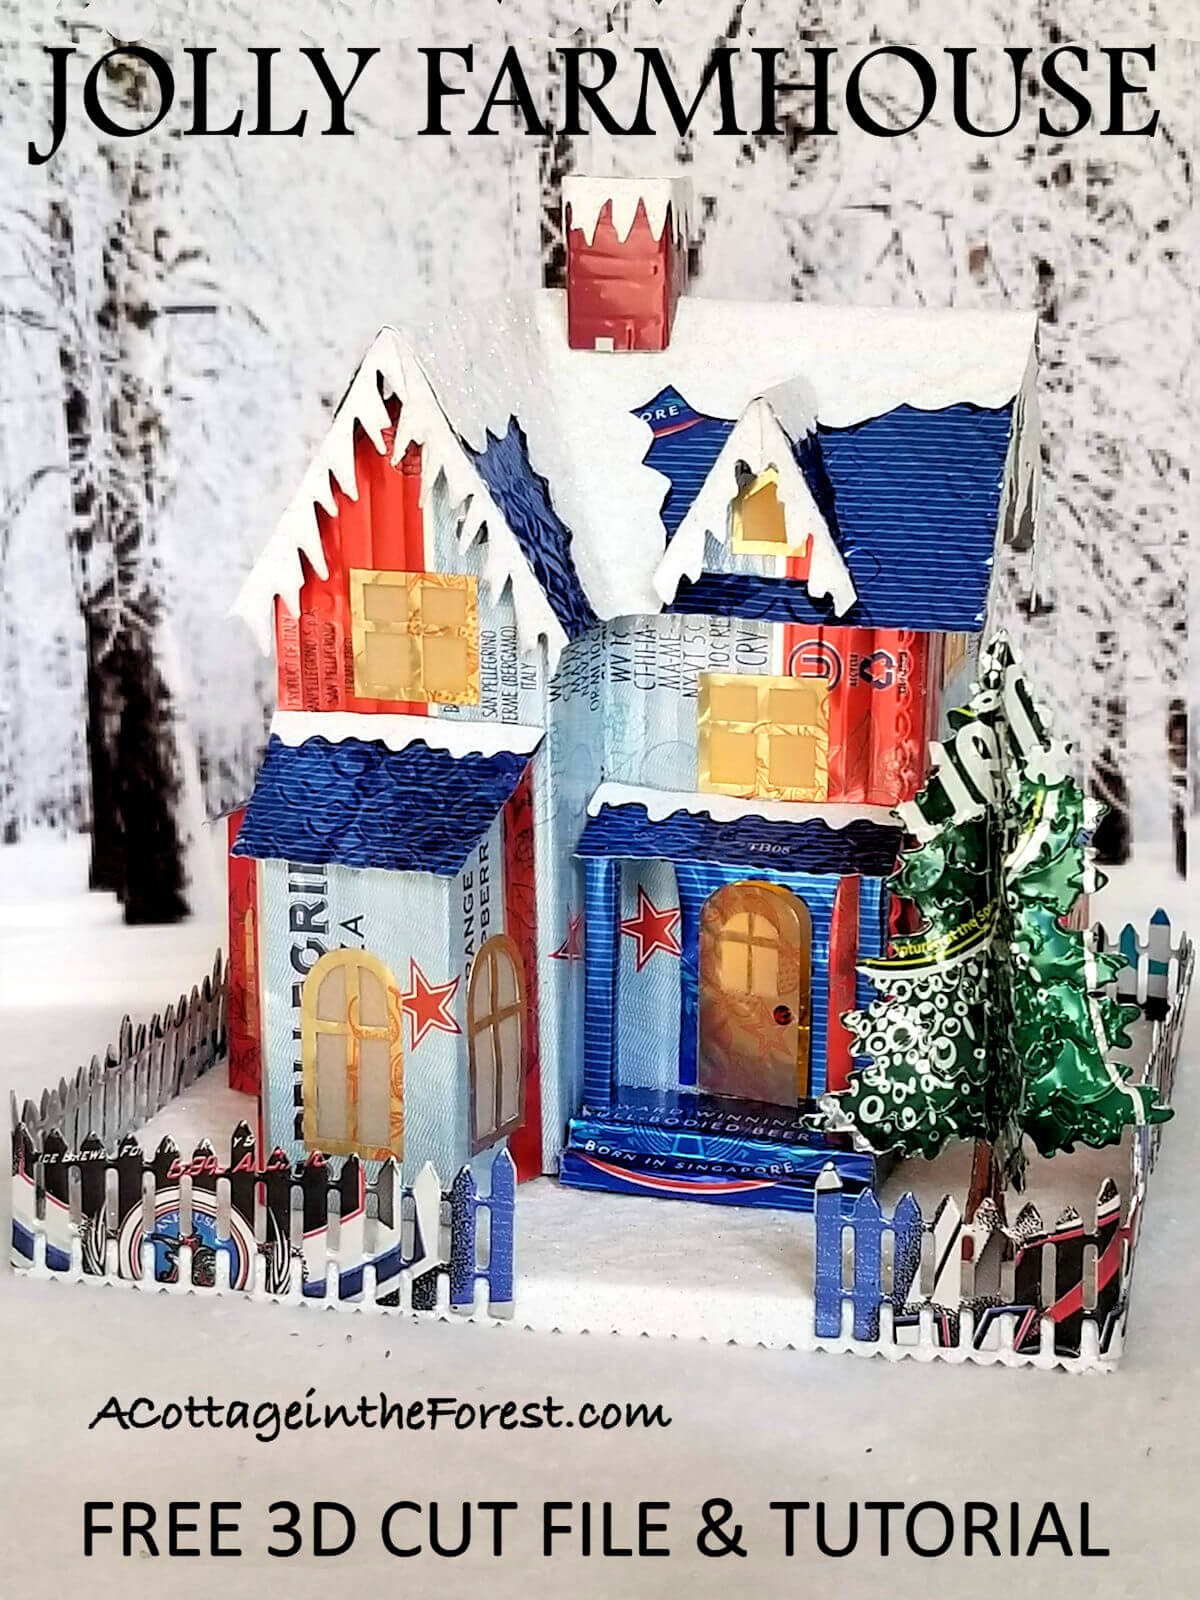 Pinterest Pin Picture for Jolly Farmhouse